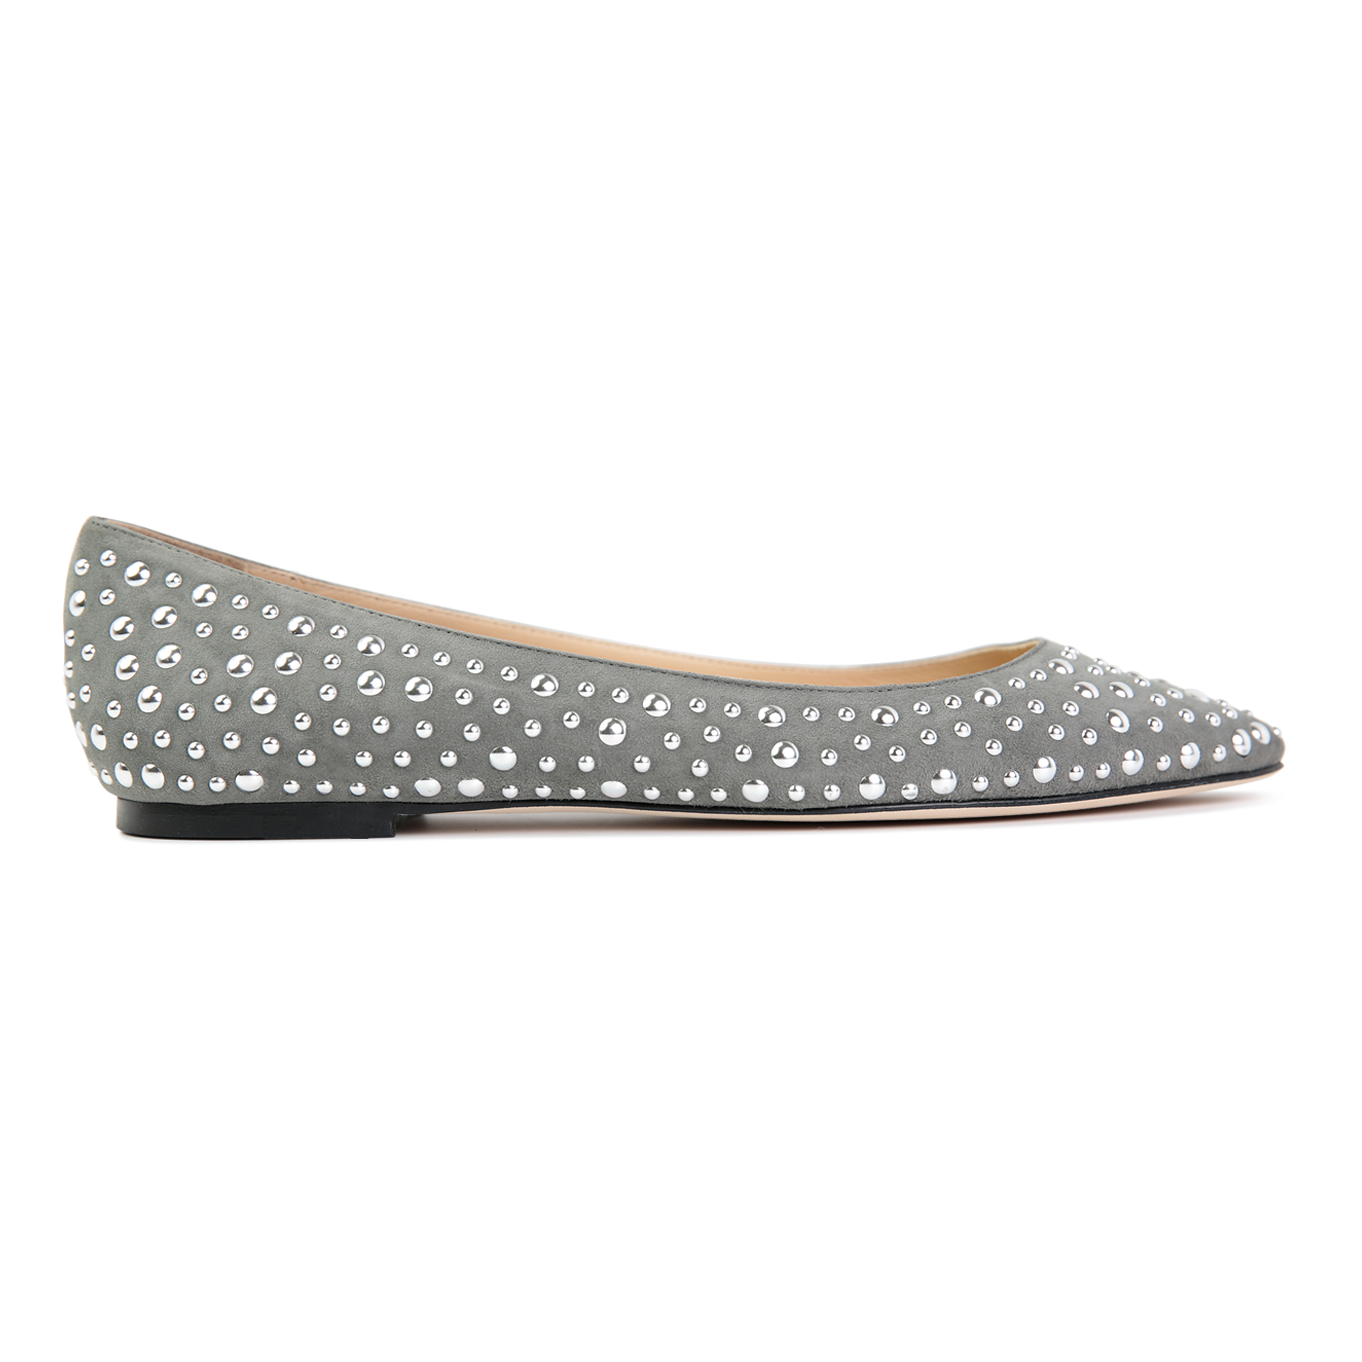 SIENA - Velukid Anthracite + Big Silver Studs, VIAJIYU - Women's Hand Made Sustainable Luxury Shoes. Made in Italy. Made to Order.